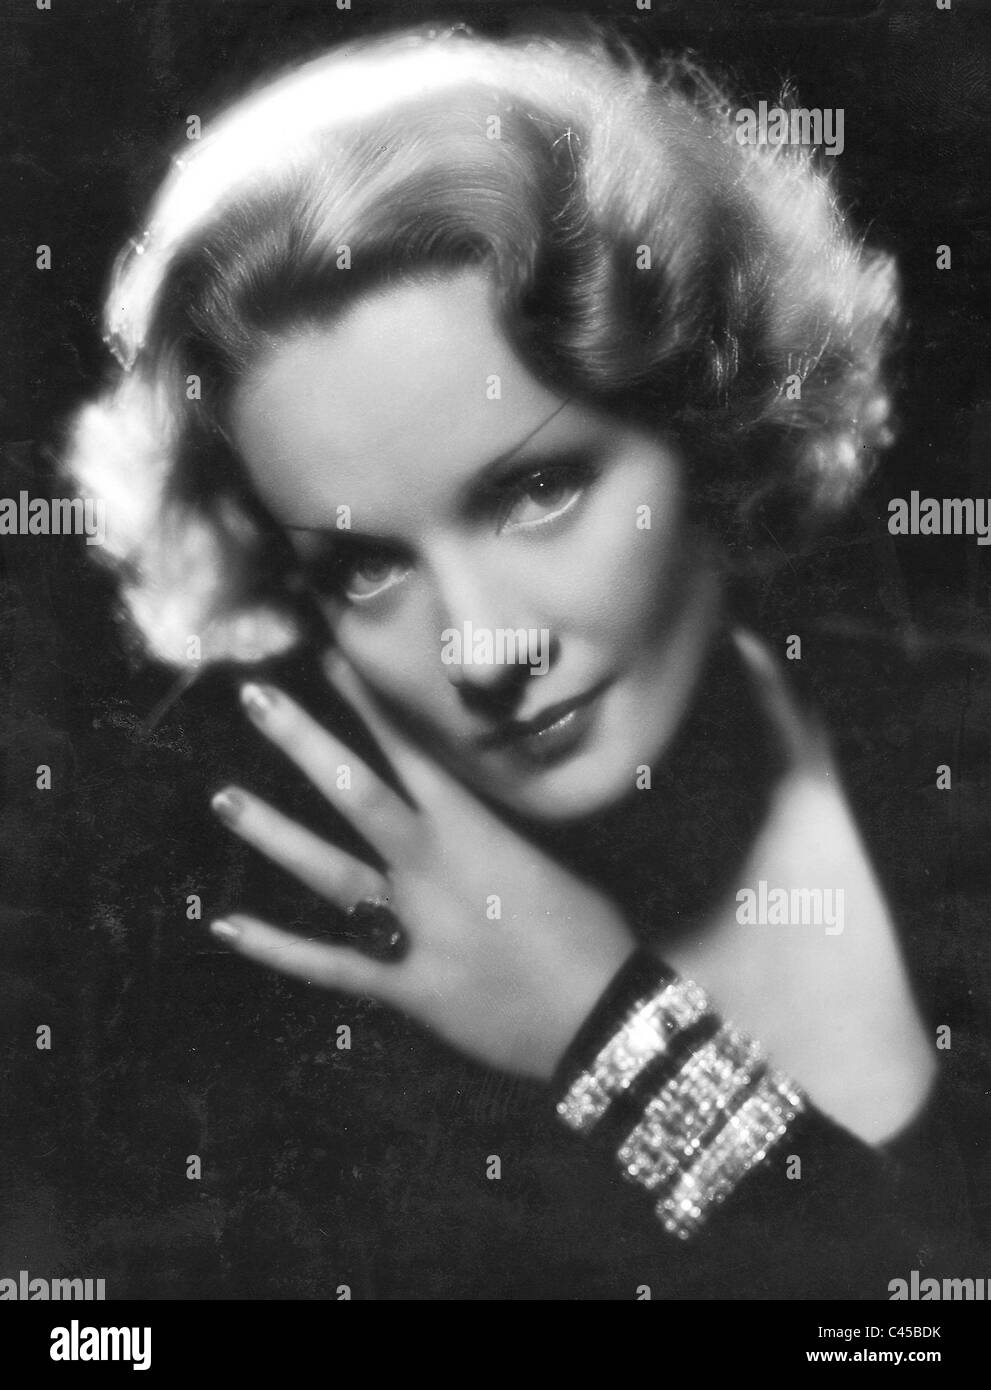 Marlene Dietrich in the 30's - Stock Image